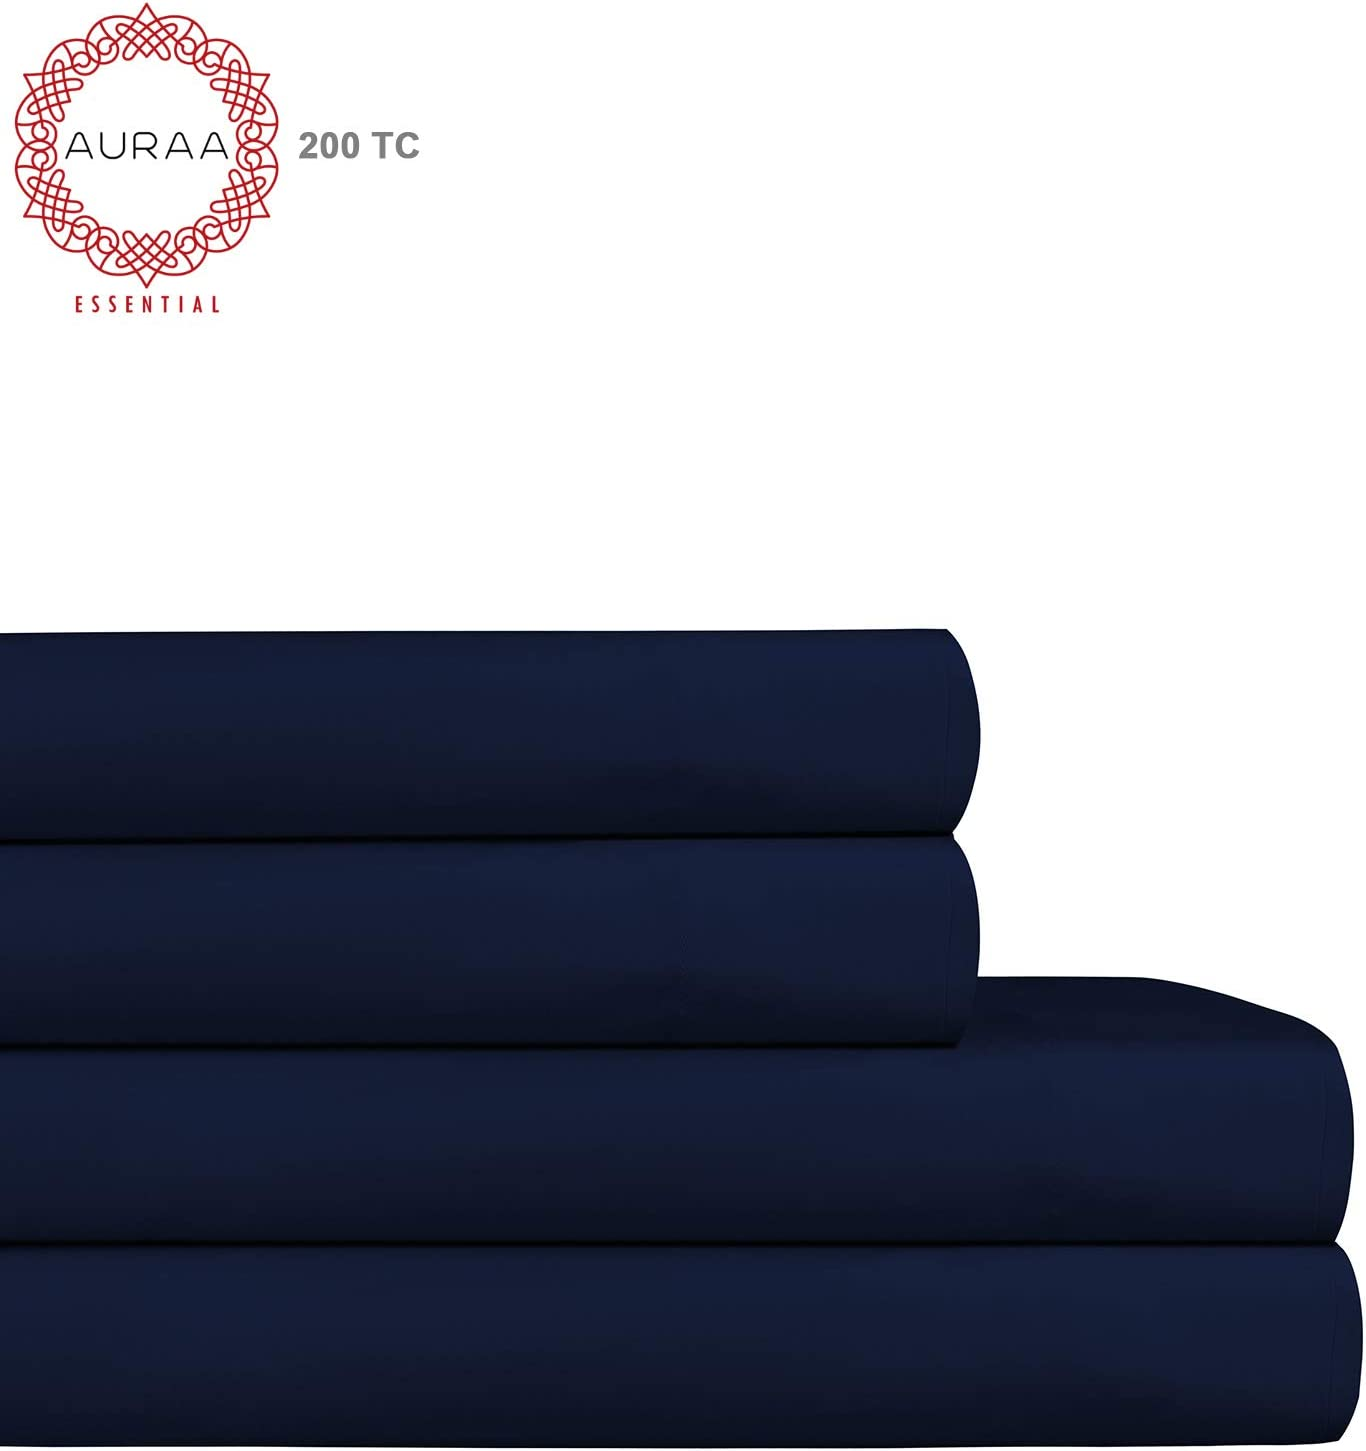 "AURAA ESSENTIAL 100% Long Staple Cotton Sheet Set - King Sheets - 4 Piece Set,Soft & Smooth Percale Weave,16"" DEEP Pocket,Luxury Hotel Bedding,Oeko-TEX Certified, Medieval Blue"